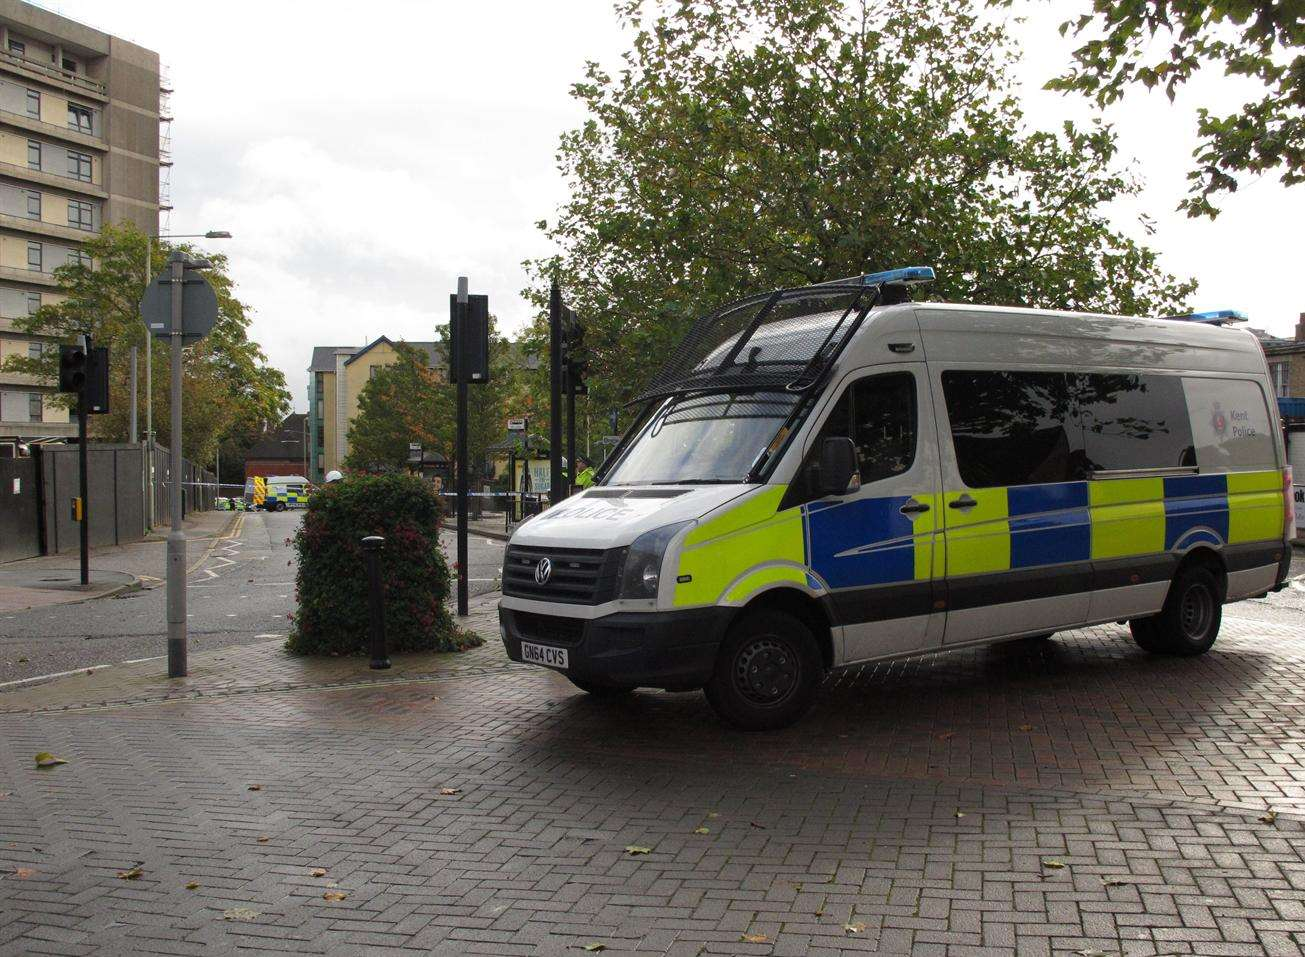 A police van parked outside the Panorama building, where Mr Males's body was discovered